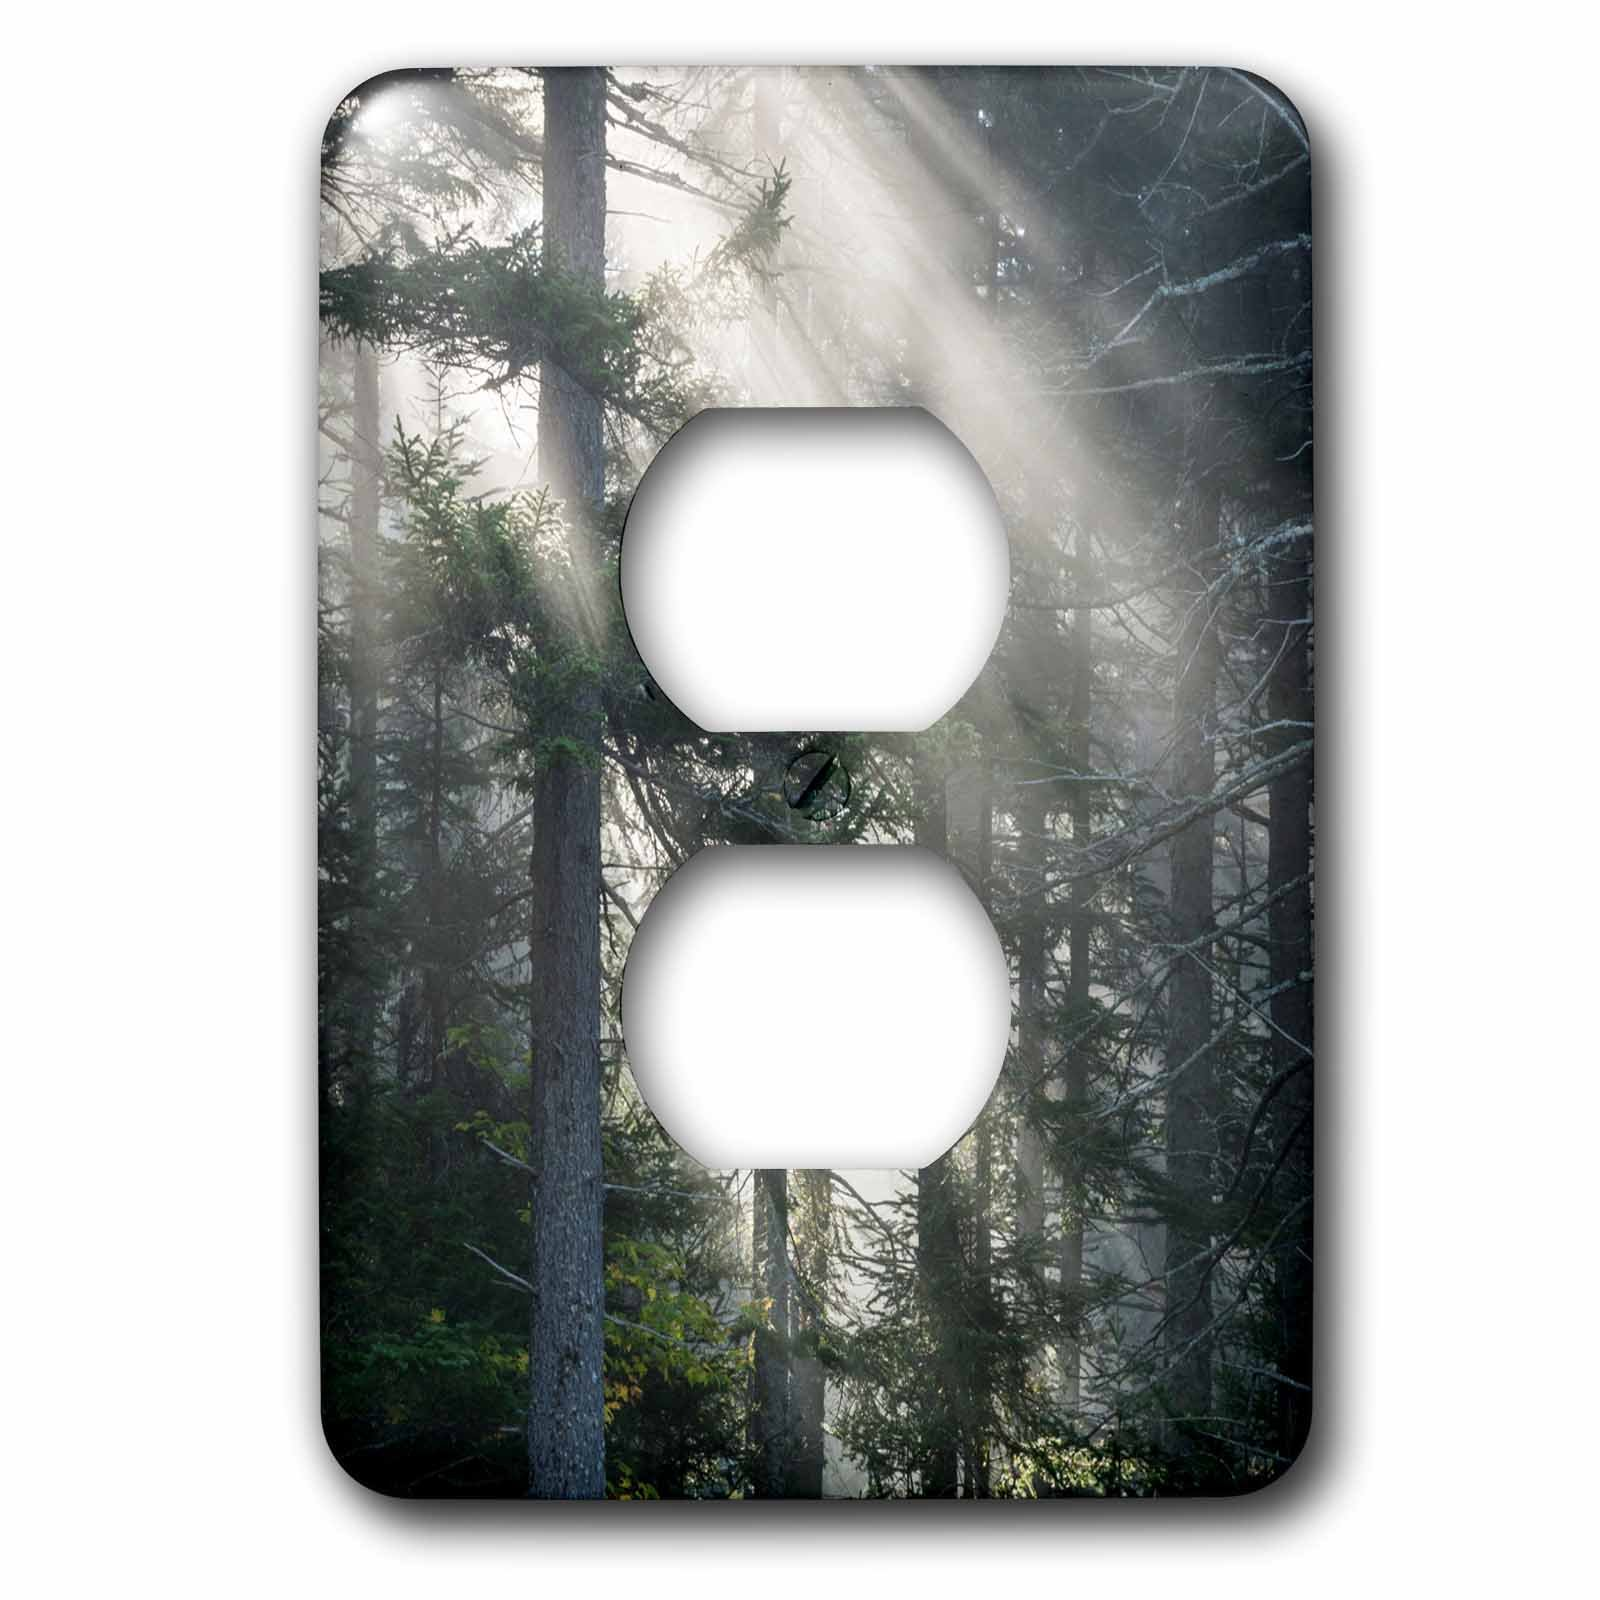 3dRose Danita Delimont - Trees - Usa, New Hampshire, White Mountains. Sun rays through pine trees. - Light Switch Covers - 2 plug outlet cover (lsp_259704_6)